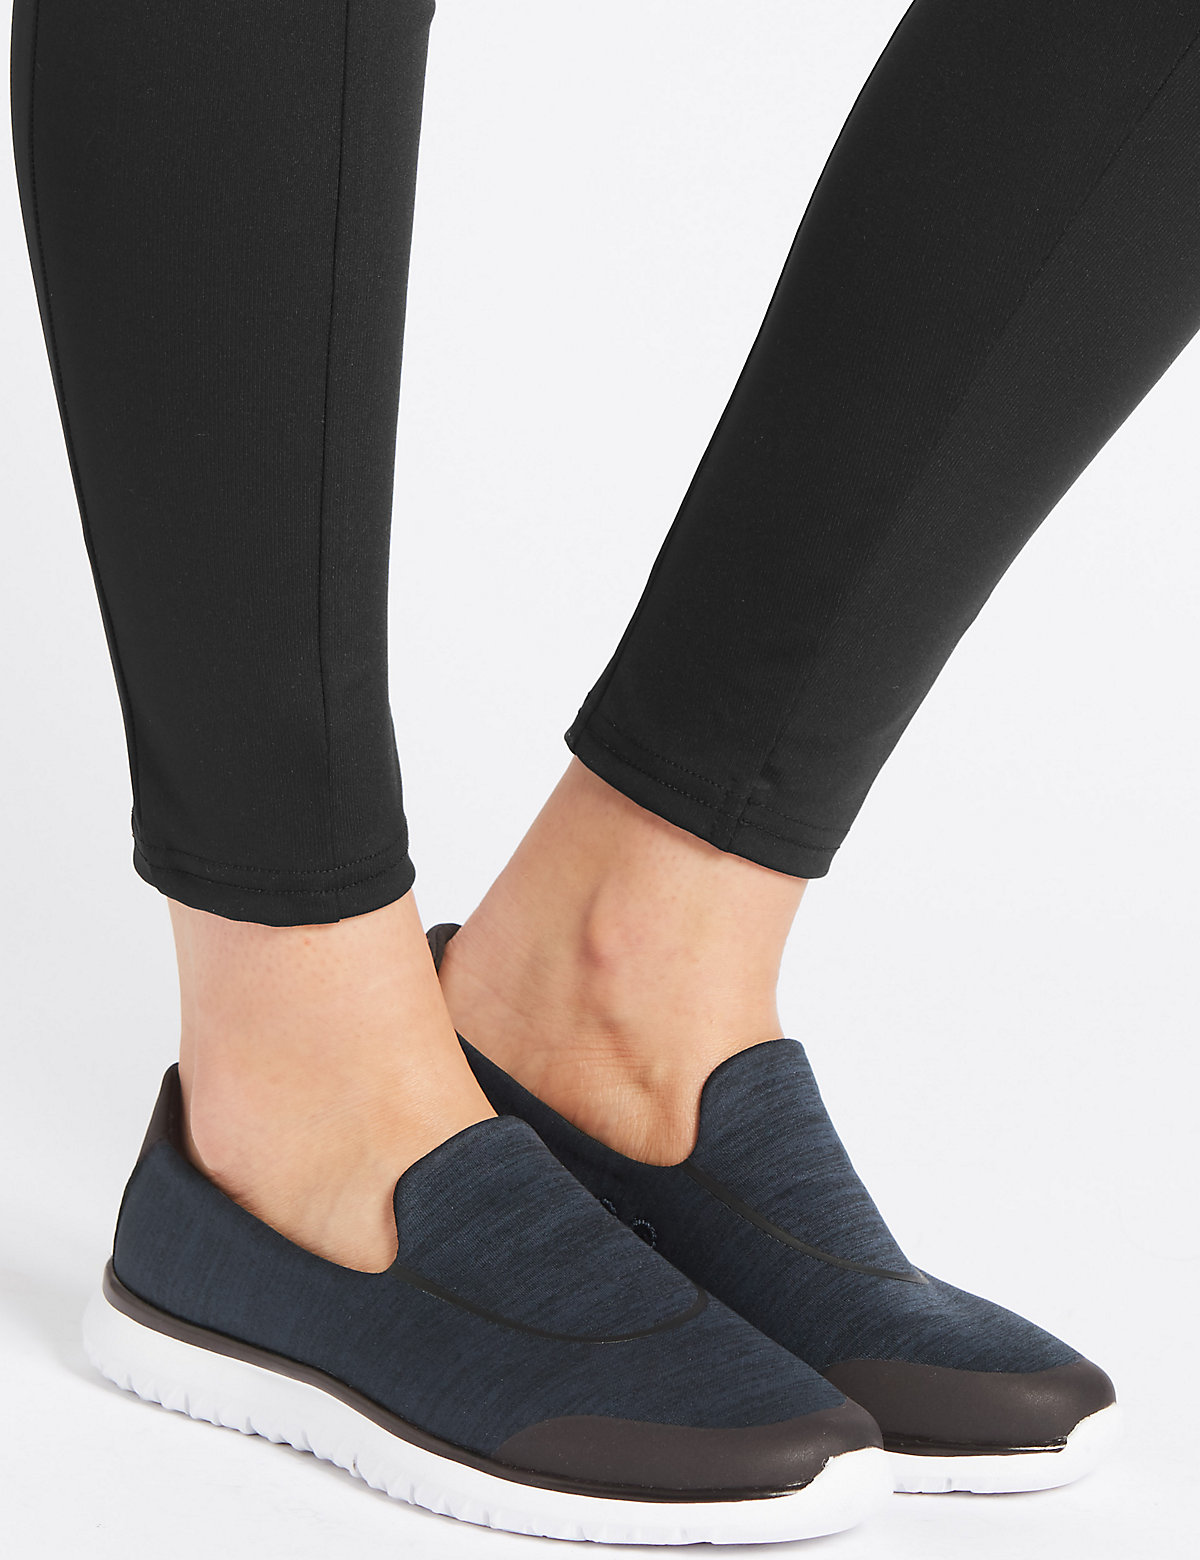 Metallic Heel Trainers Compare Bluewater D Island Shoes Moccasine Slip On Lacoste Suede Black